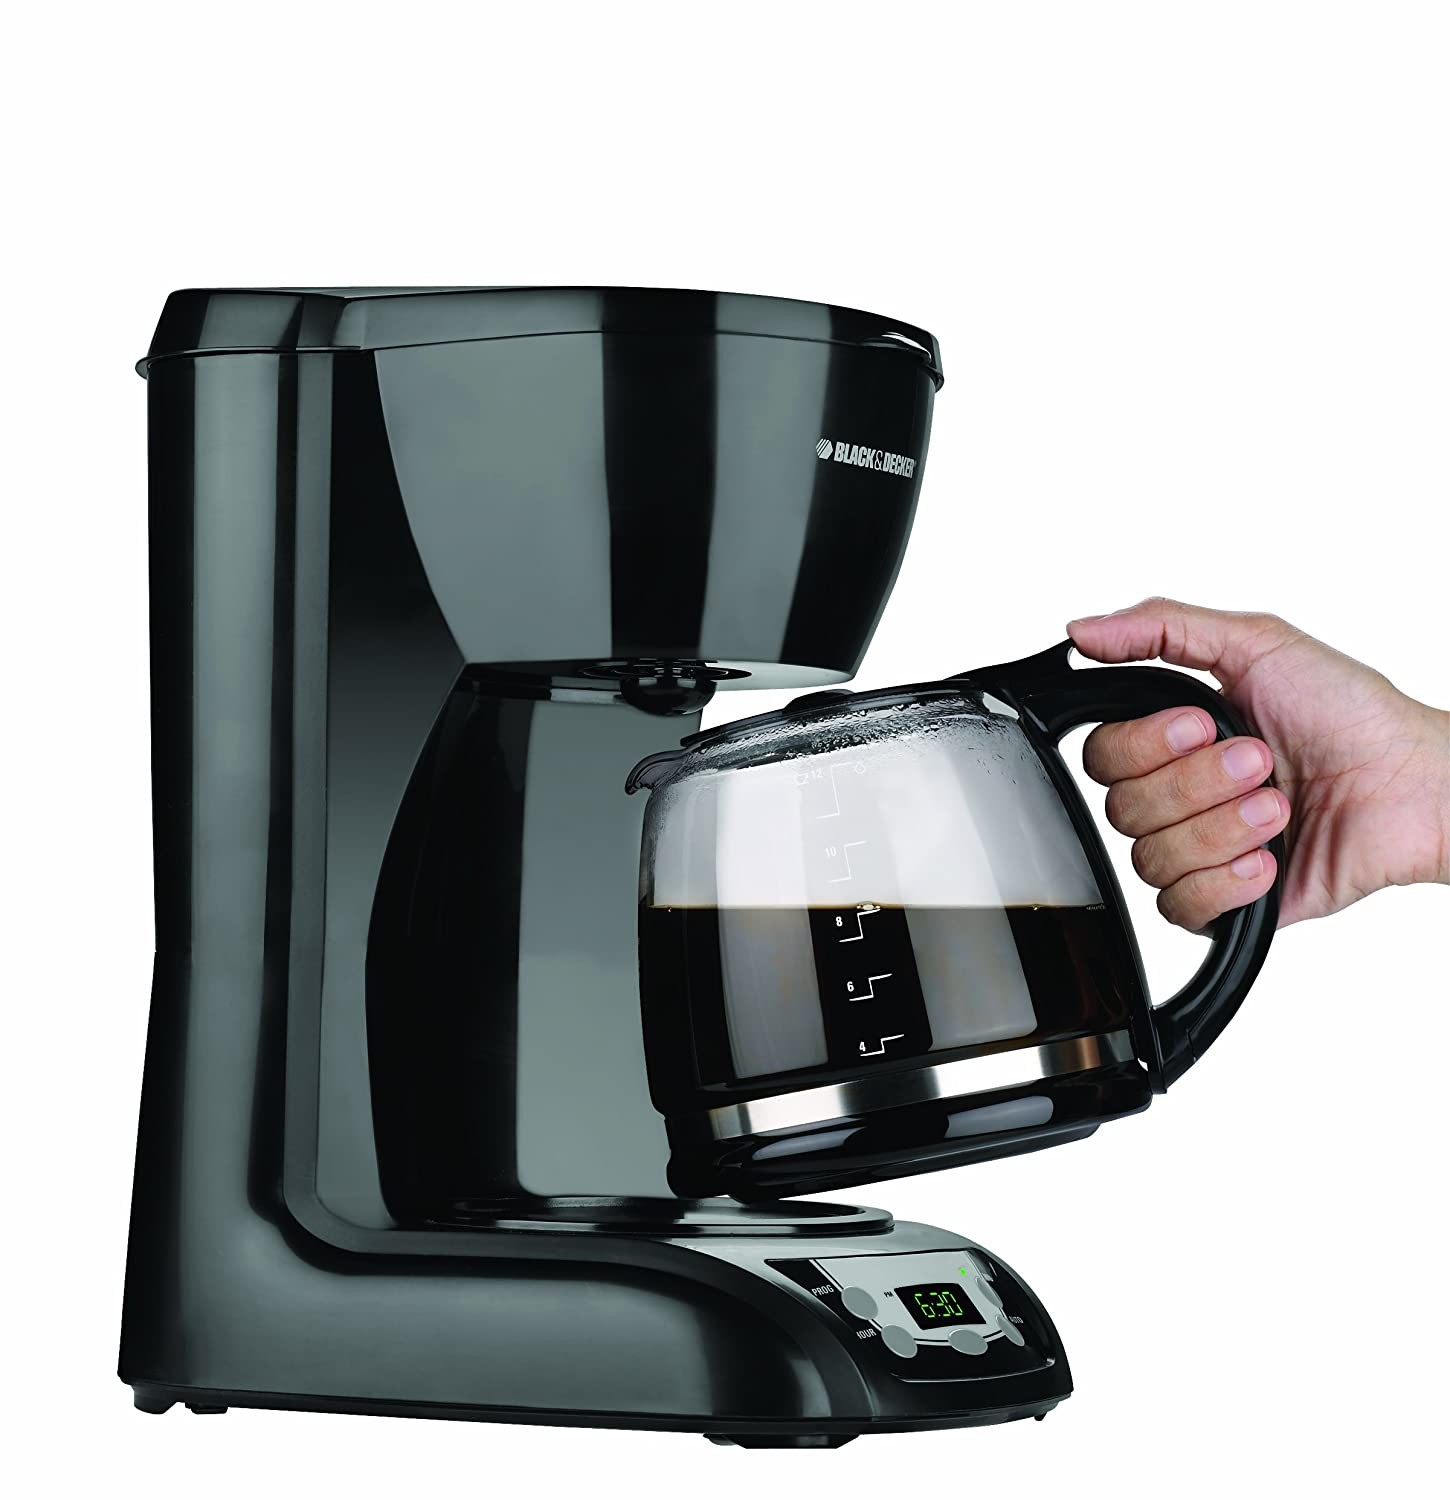 Black and decker coffee maker 12 cup programmable - Amazon Com Black Decker Cm1200b 12 Cup Switch Coffeemaker Black Drip Coffeemakers Kitchen Dining